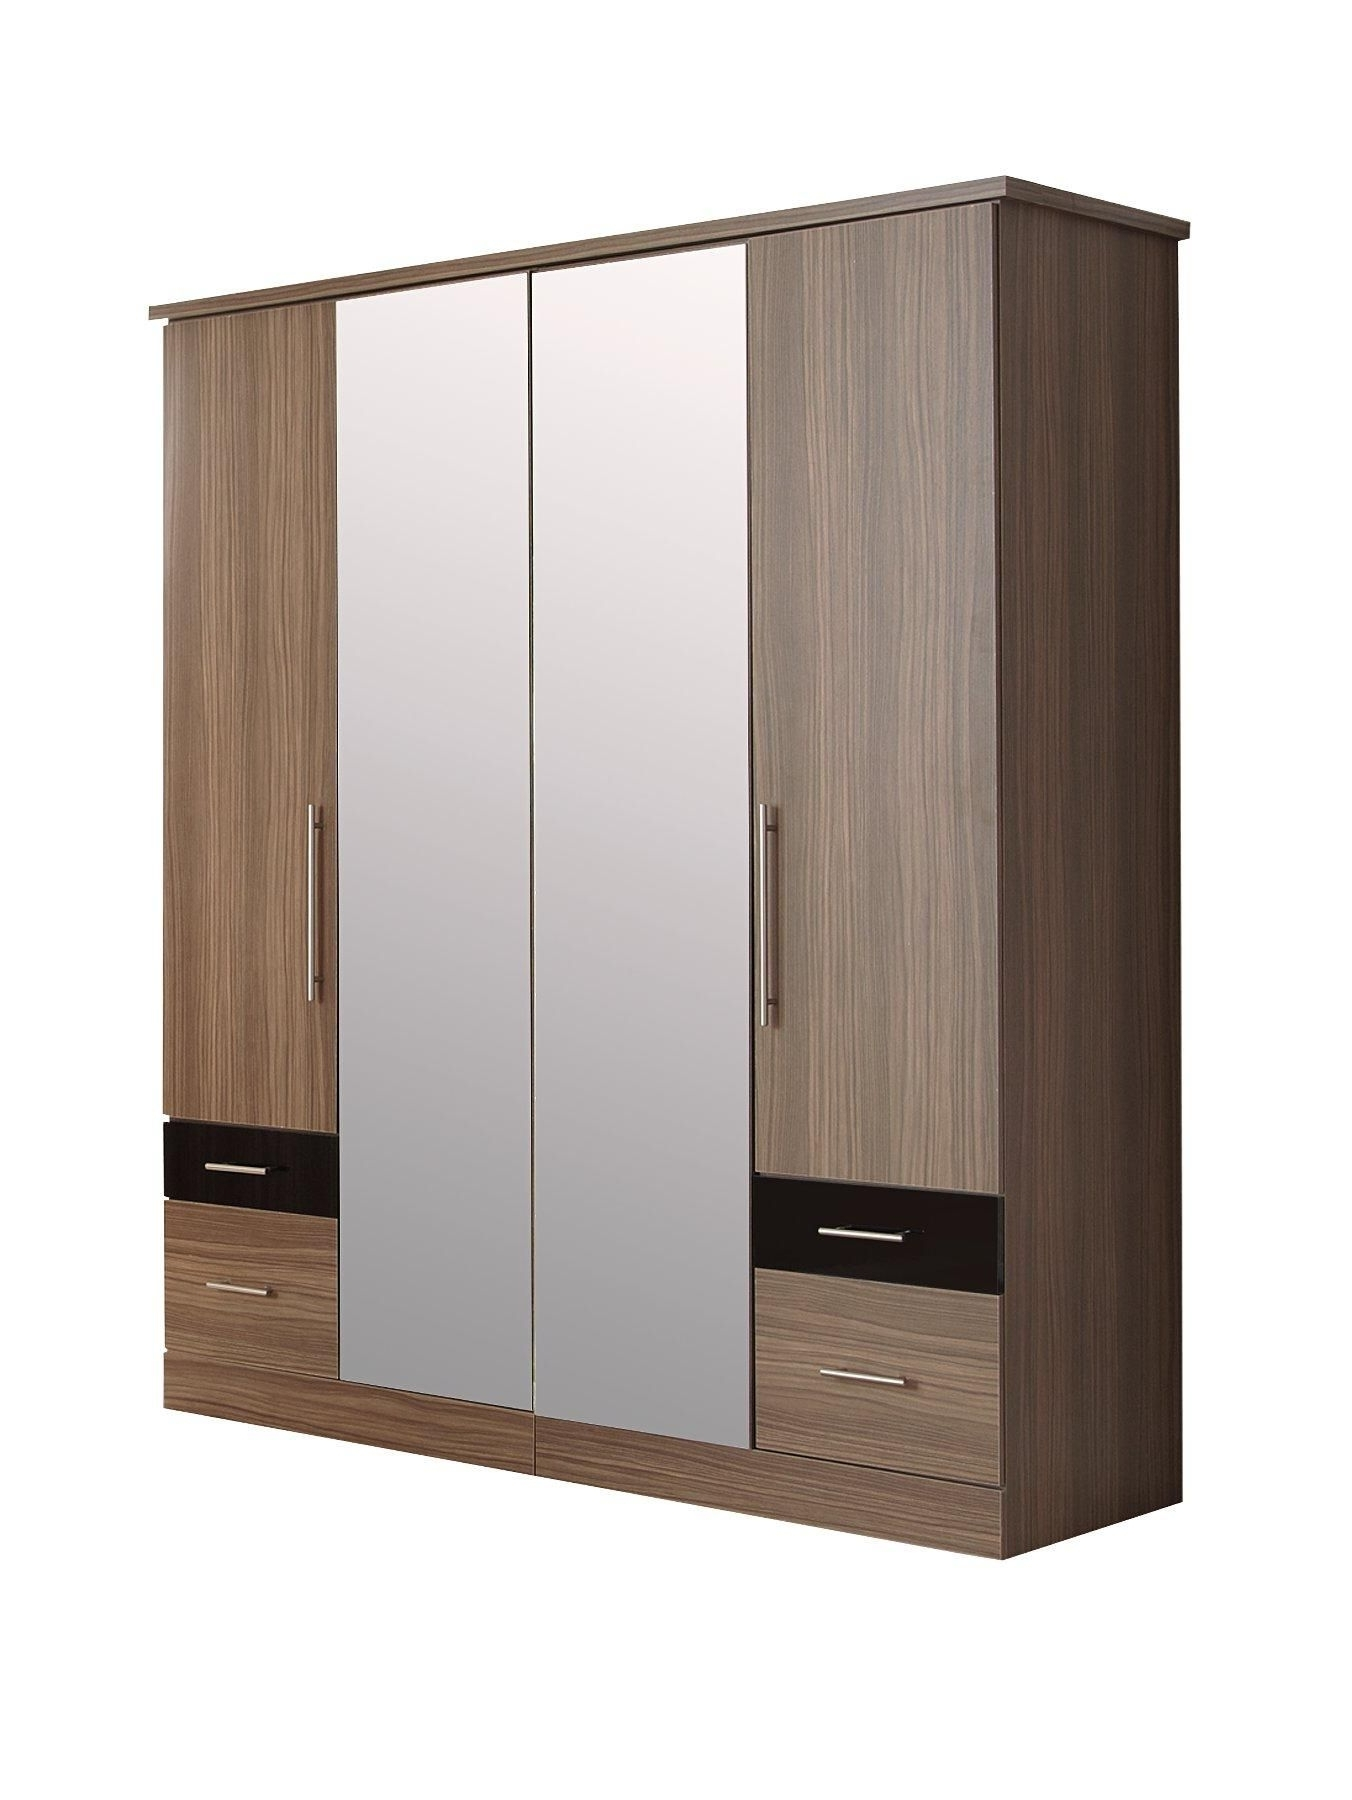 4 Door Wardrobes With Mirror And Drawers Throughout Widely Used Consort Eclipse 4 Door, 4 Drawer Wardrobe With Mirror (View 5 of 15)